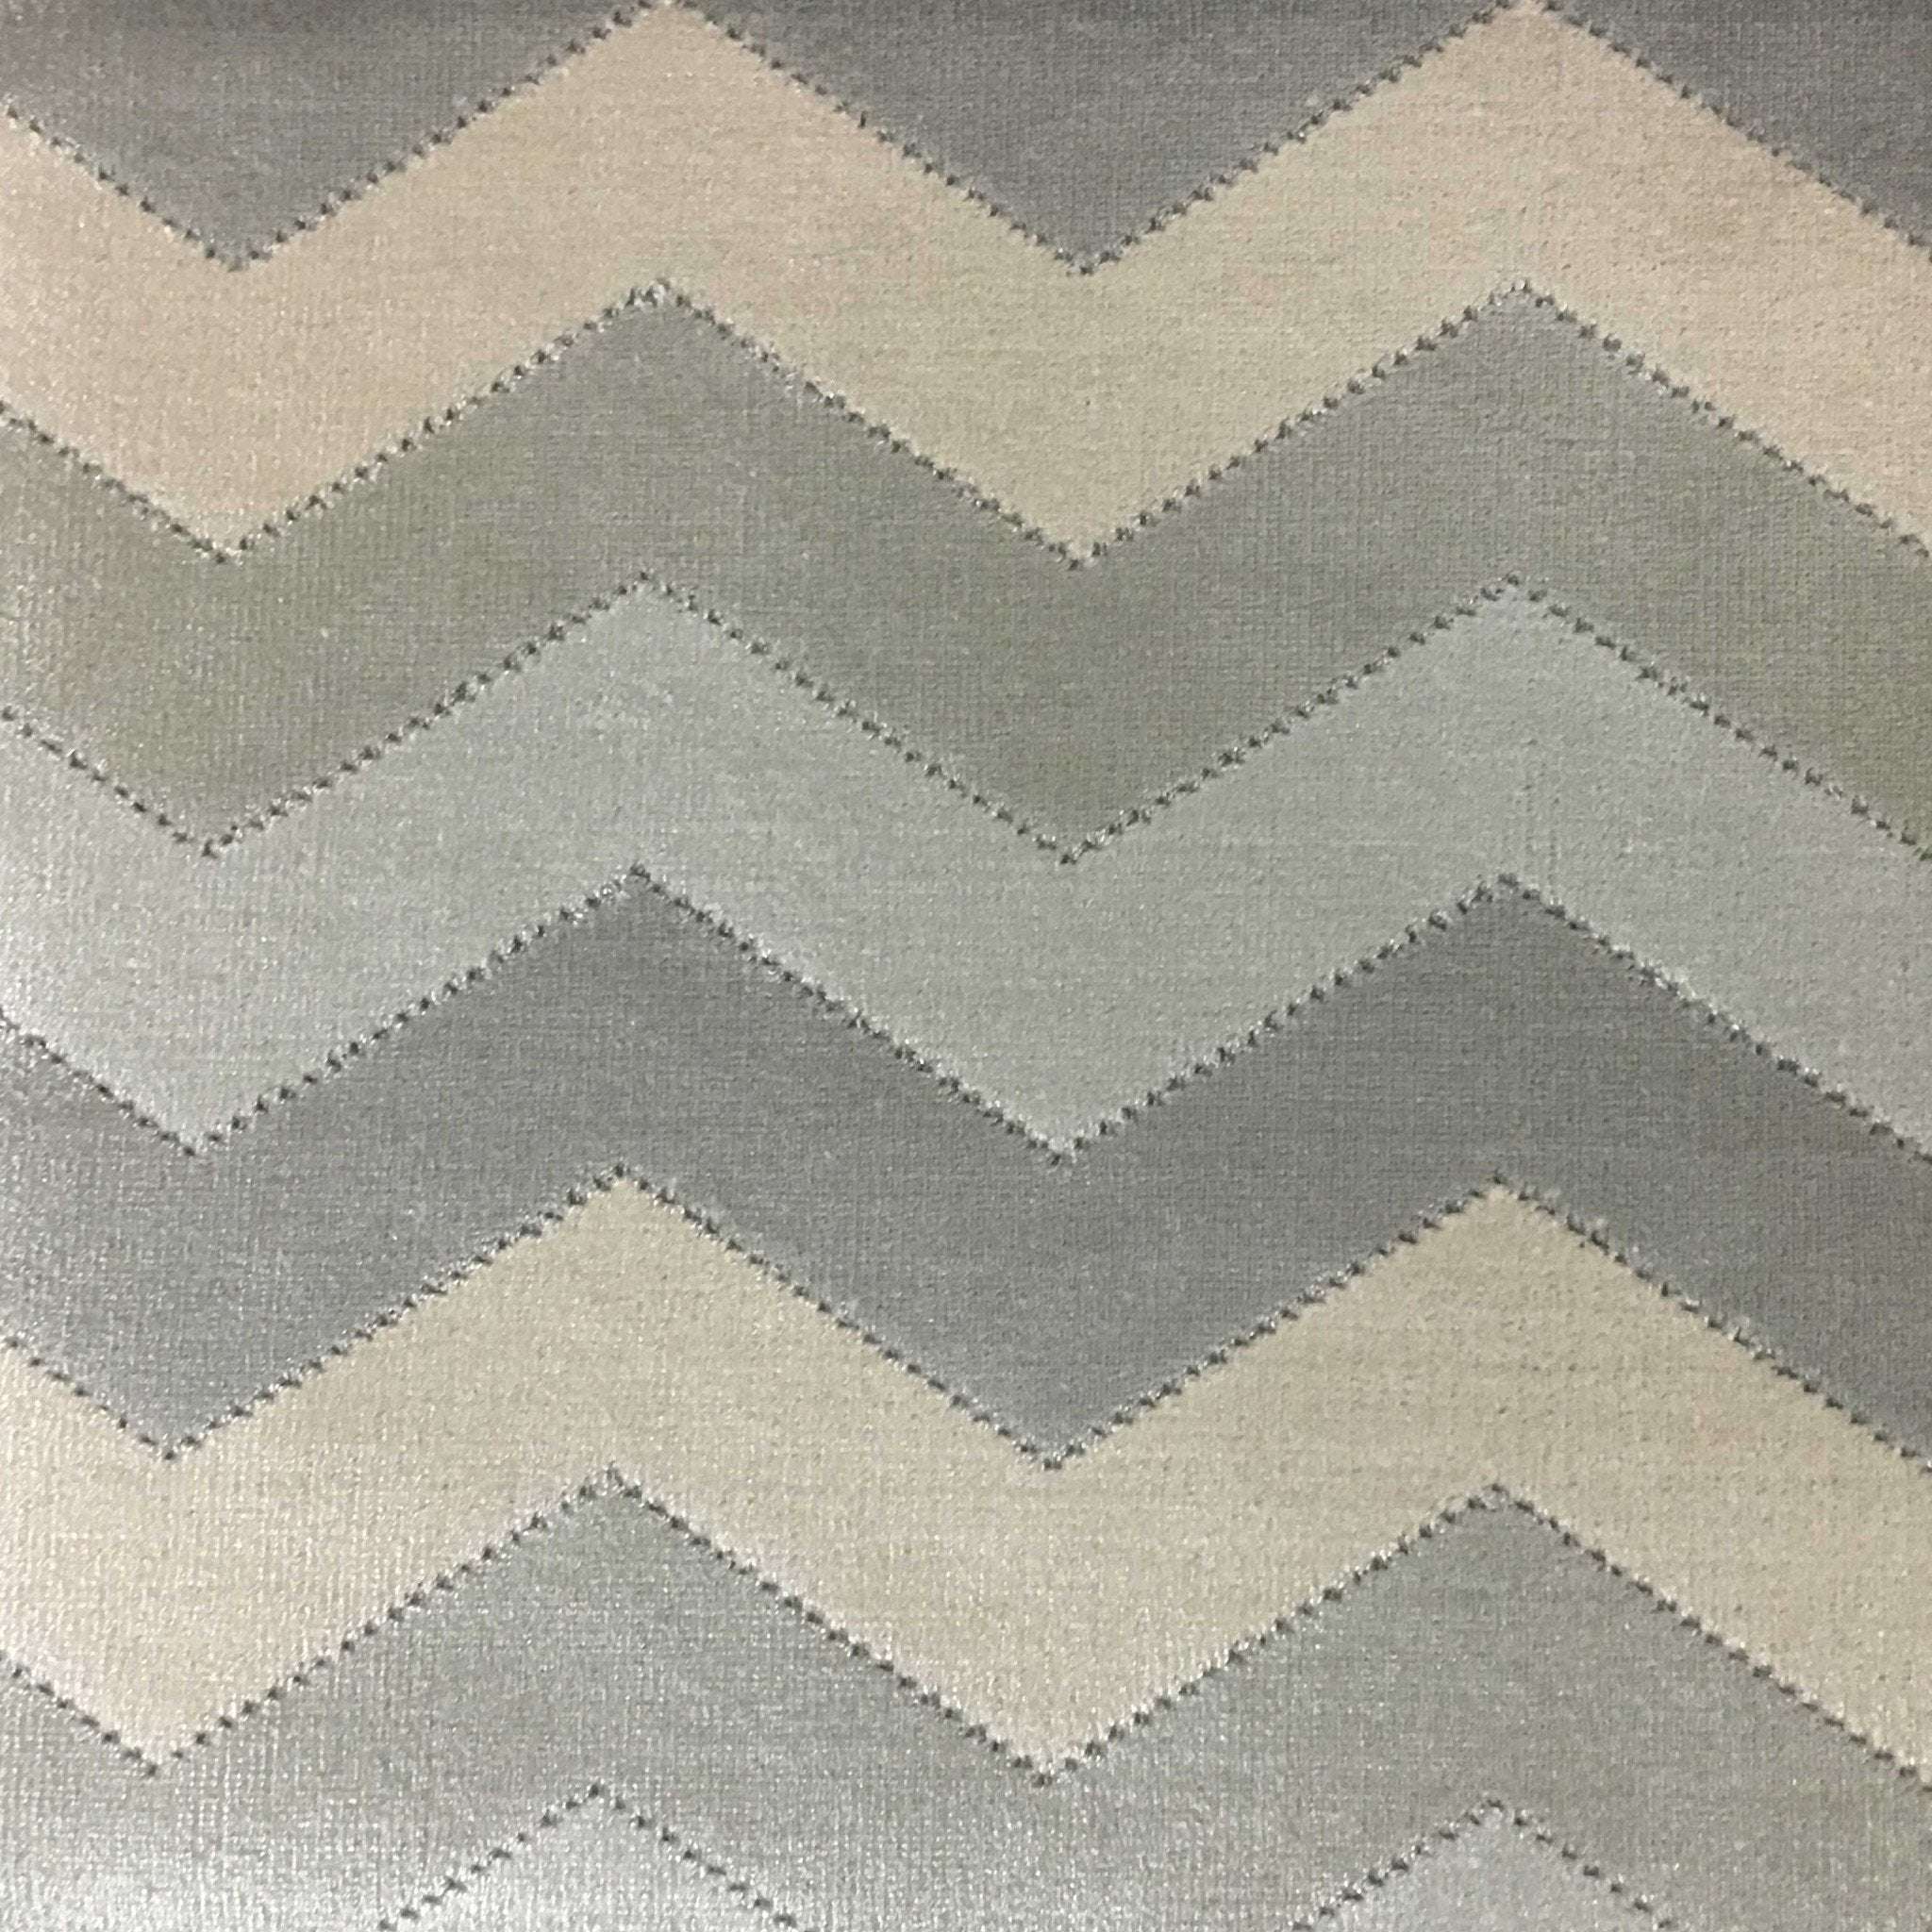 Longwood - Chevron Pattern Cut Velvet Upholster Fabric by the Yard